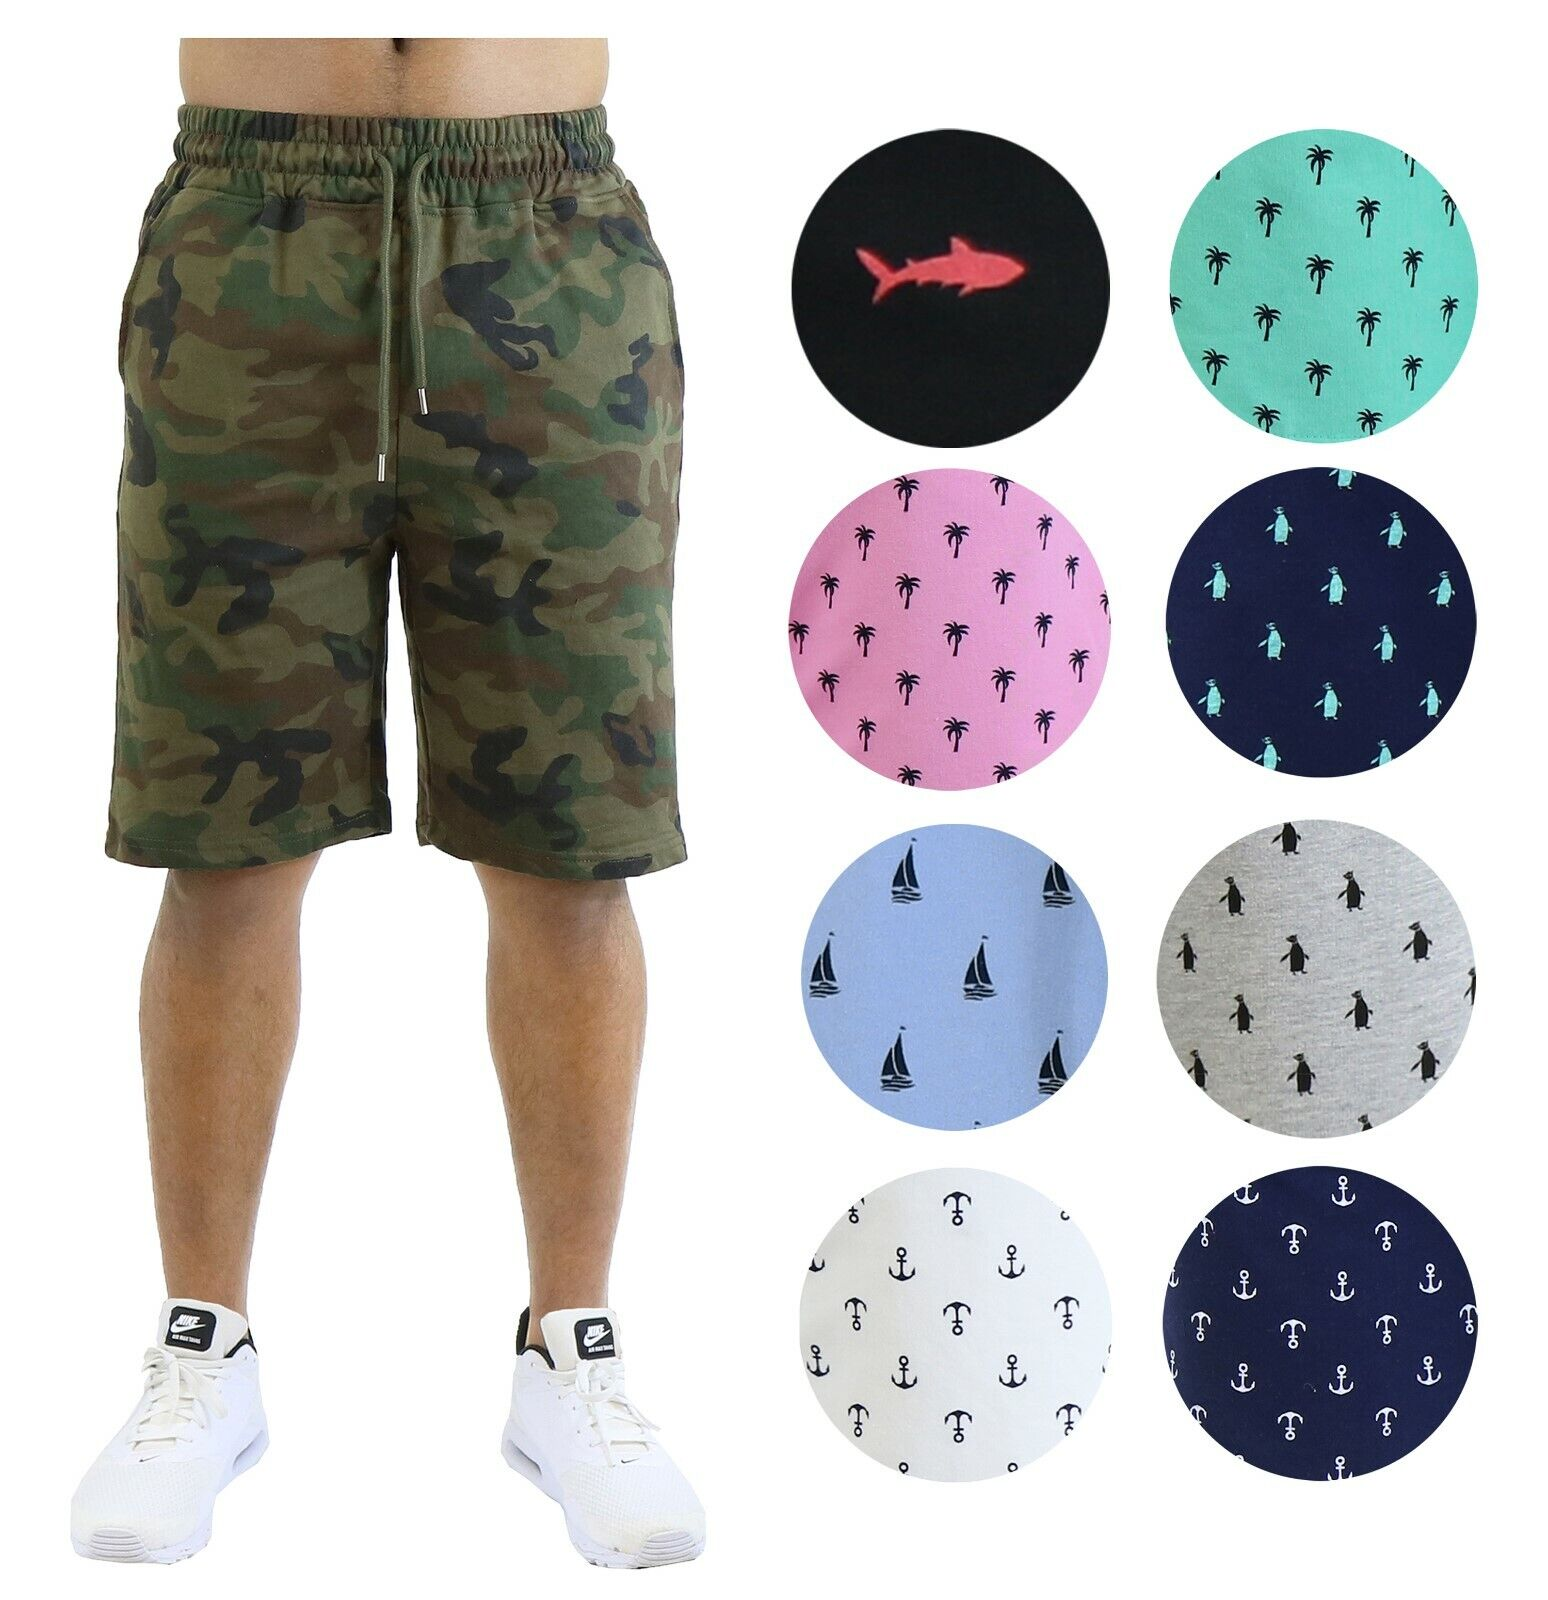 Mens Printed Shorts French Terry Lounge Athletic Sweat Shorts Gym Beach Sports Clothing, Shoes & Accessories